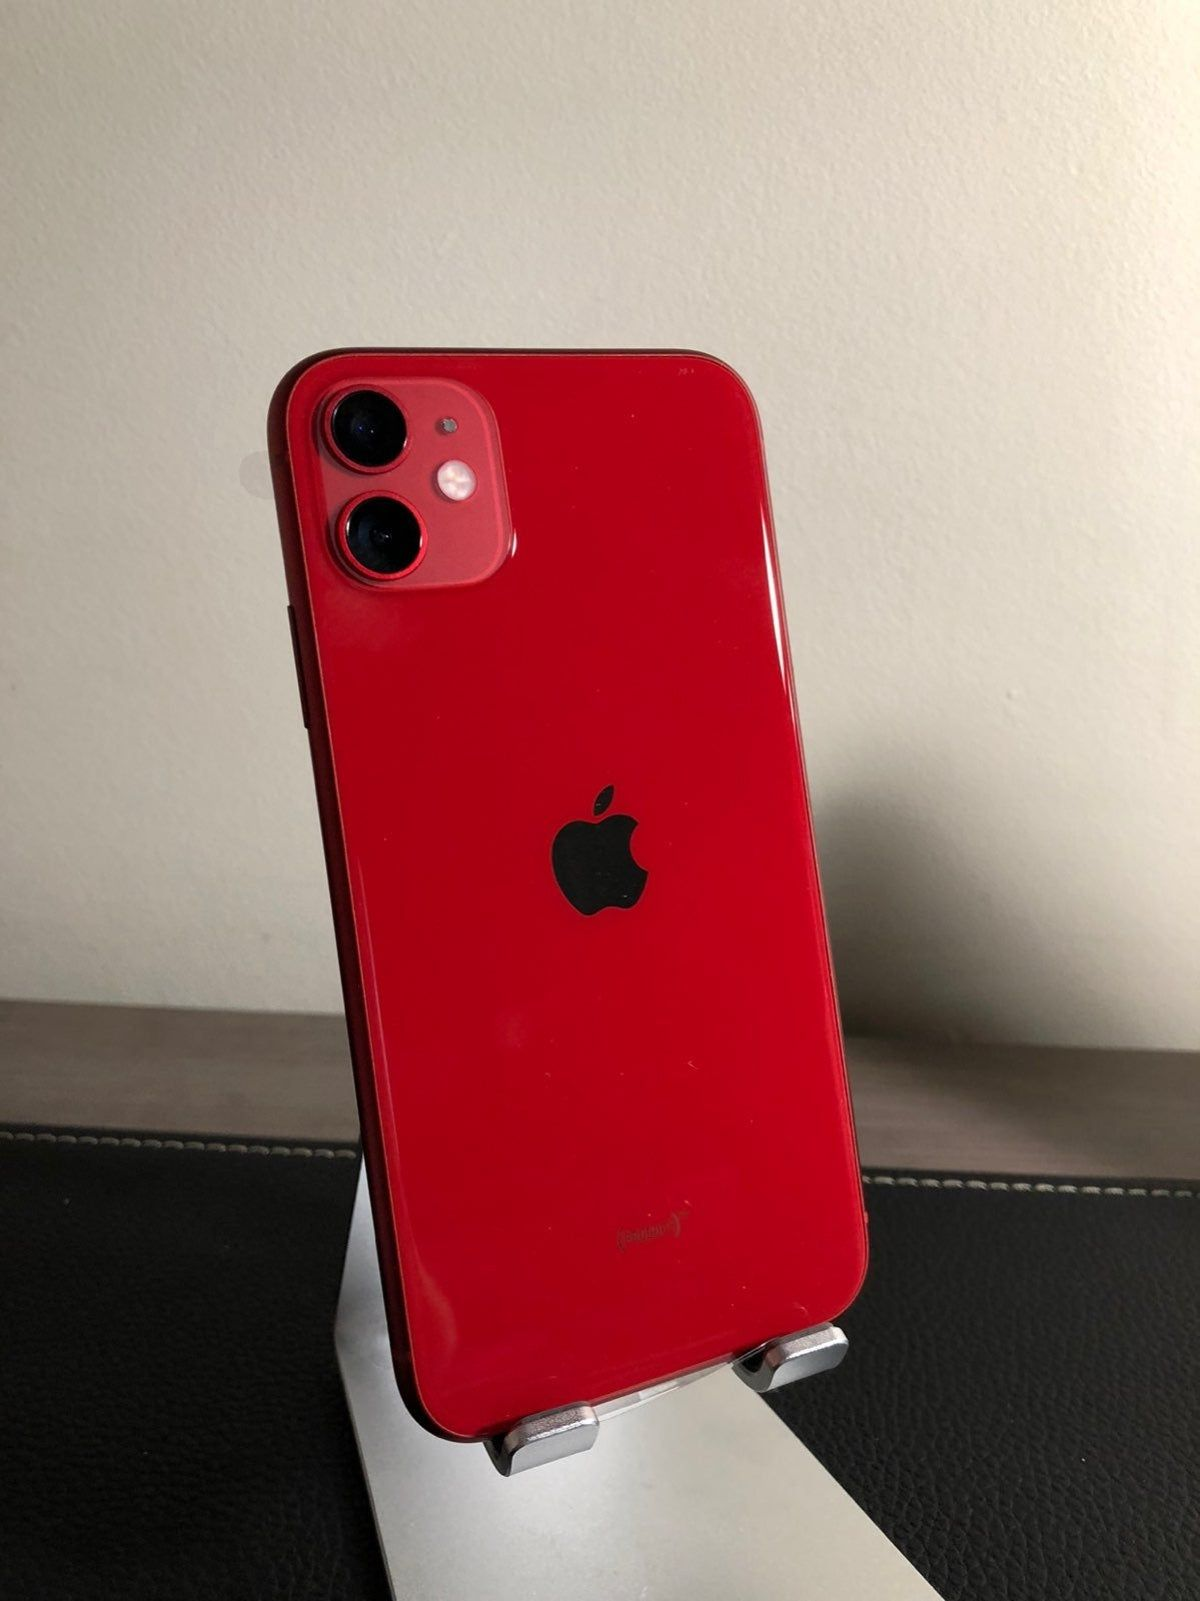 Iphone 11 Product Red 64 Gb T Mobile On Mercari In 2020 Iphone Iphone 11 Colors Apple Phone Case